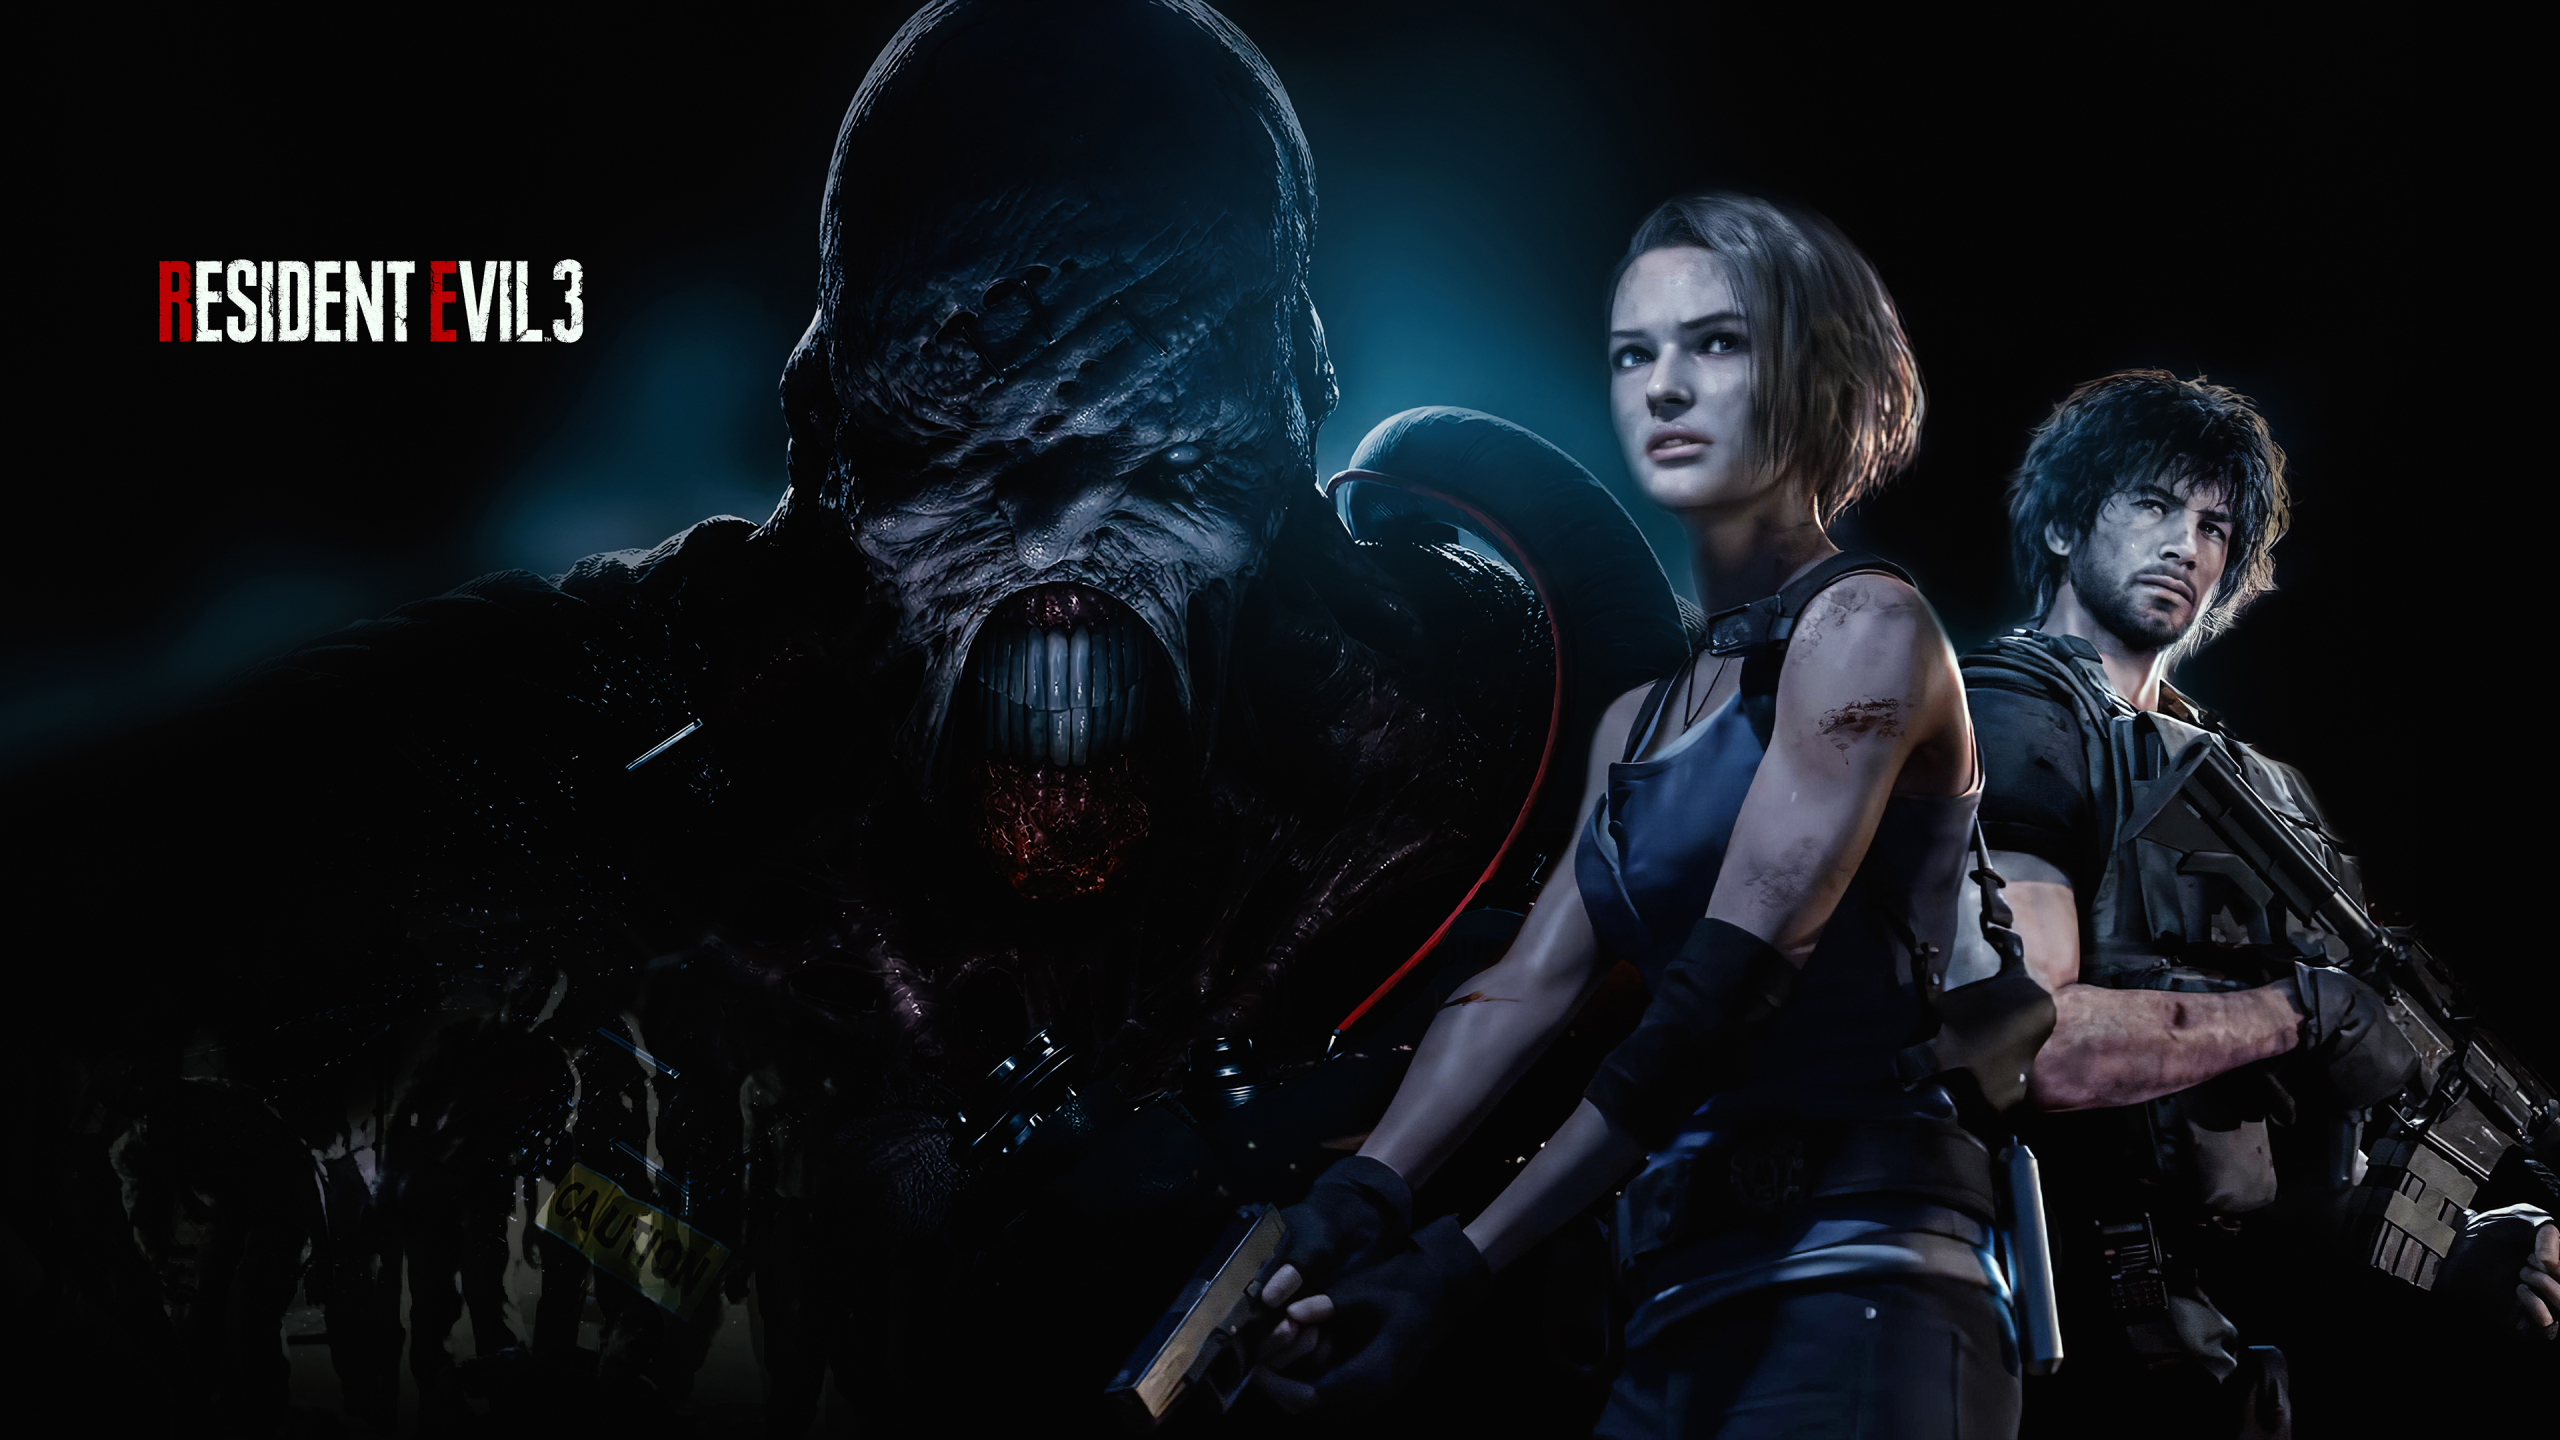 2560x1440 New Resident Evil 3 2020 4k 1440p Resolution Wallpaper